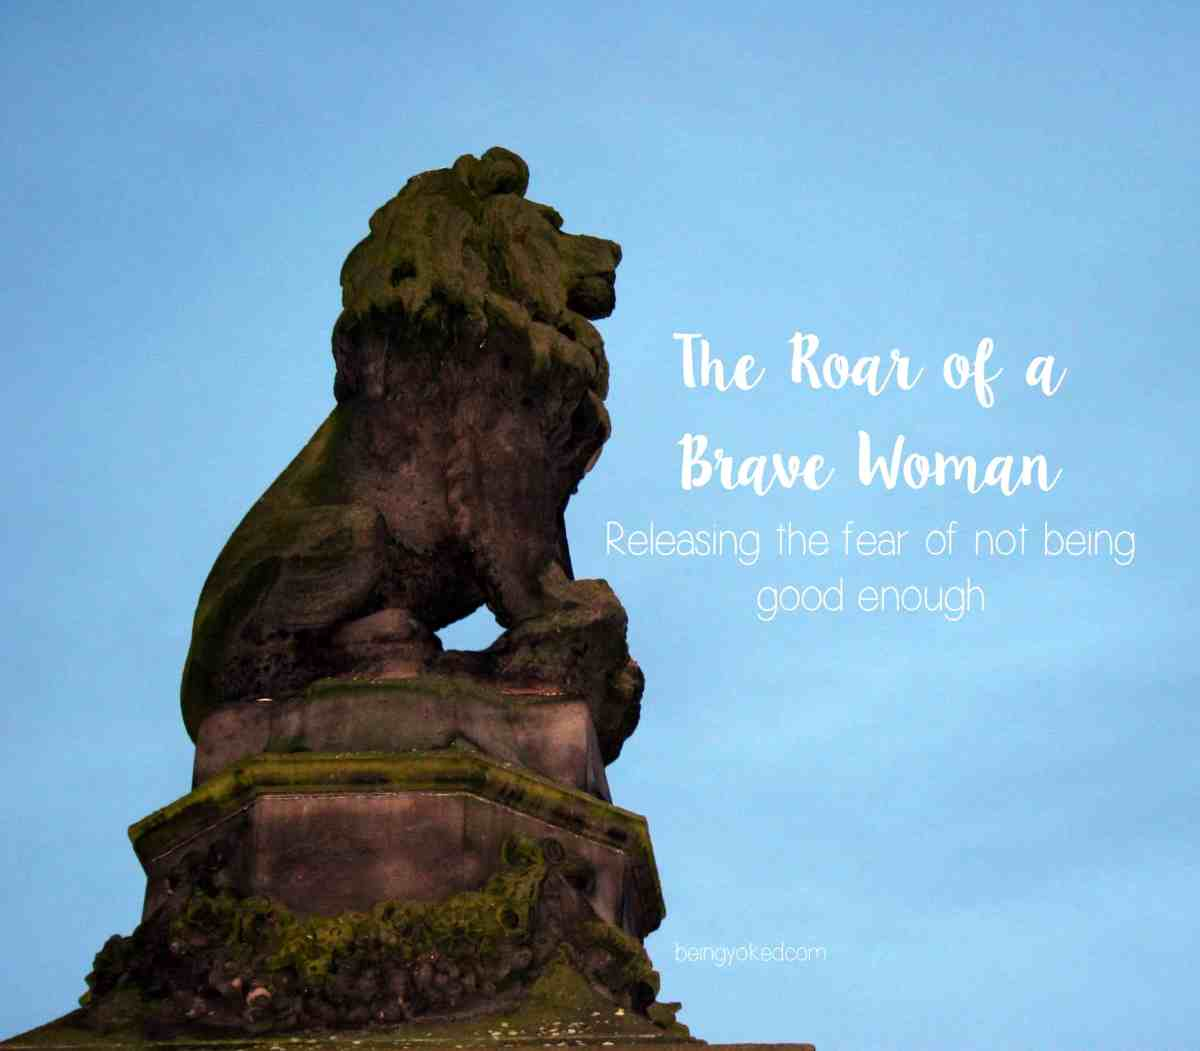 The Roar of a Brave Woman: Releasing the Fear of Not Being Good Enough